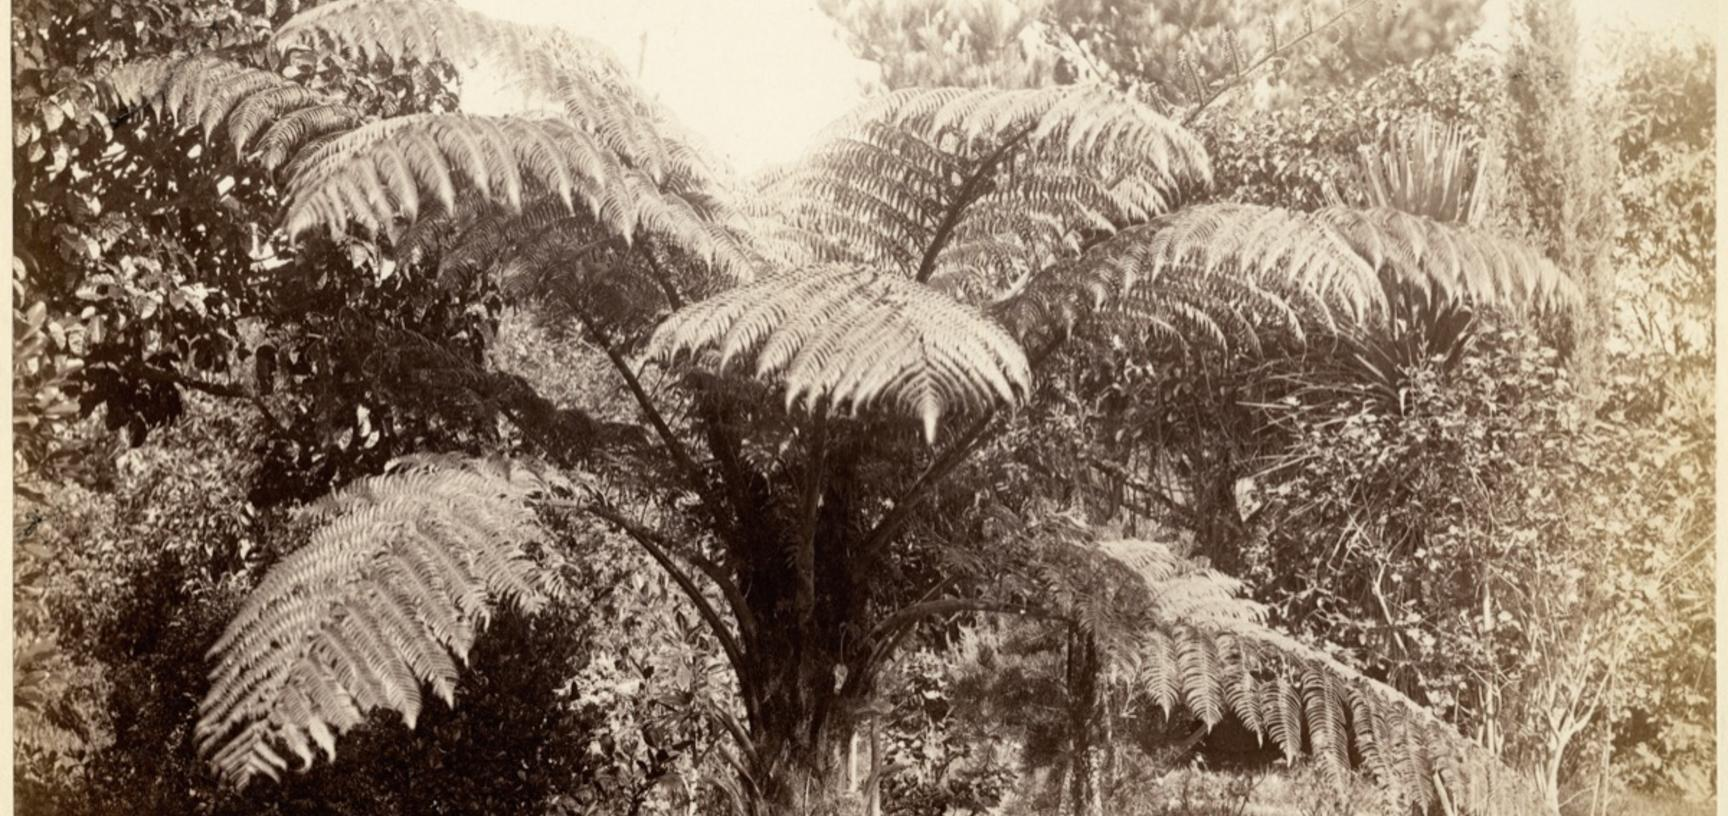 Tree fern (Dicksonia squarrosa) and other vegetation. Photograph by Alfred Burton for the Burton Brothers studio (Dunedin). New Zealand. Circa 1885. (Copyright Pitt Rivers Museum, University of Oxford. Accession Number: 1998.245.177)